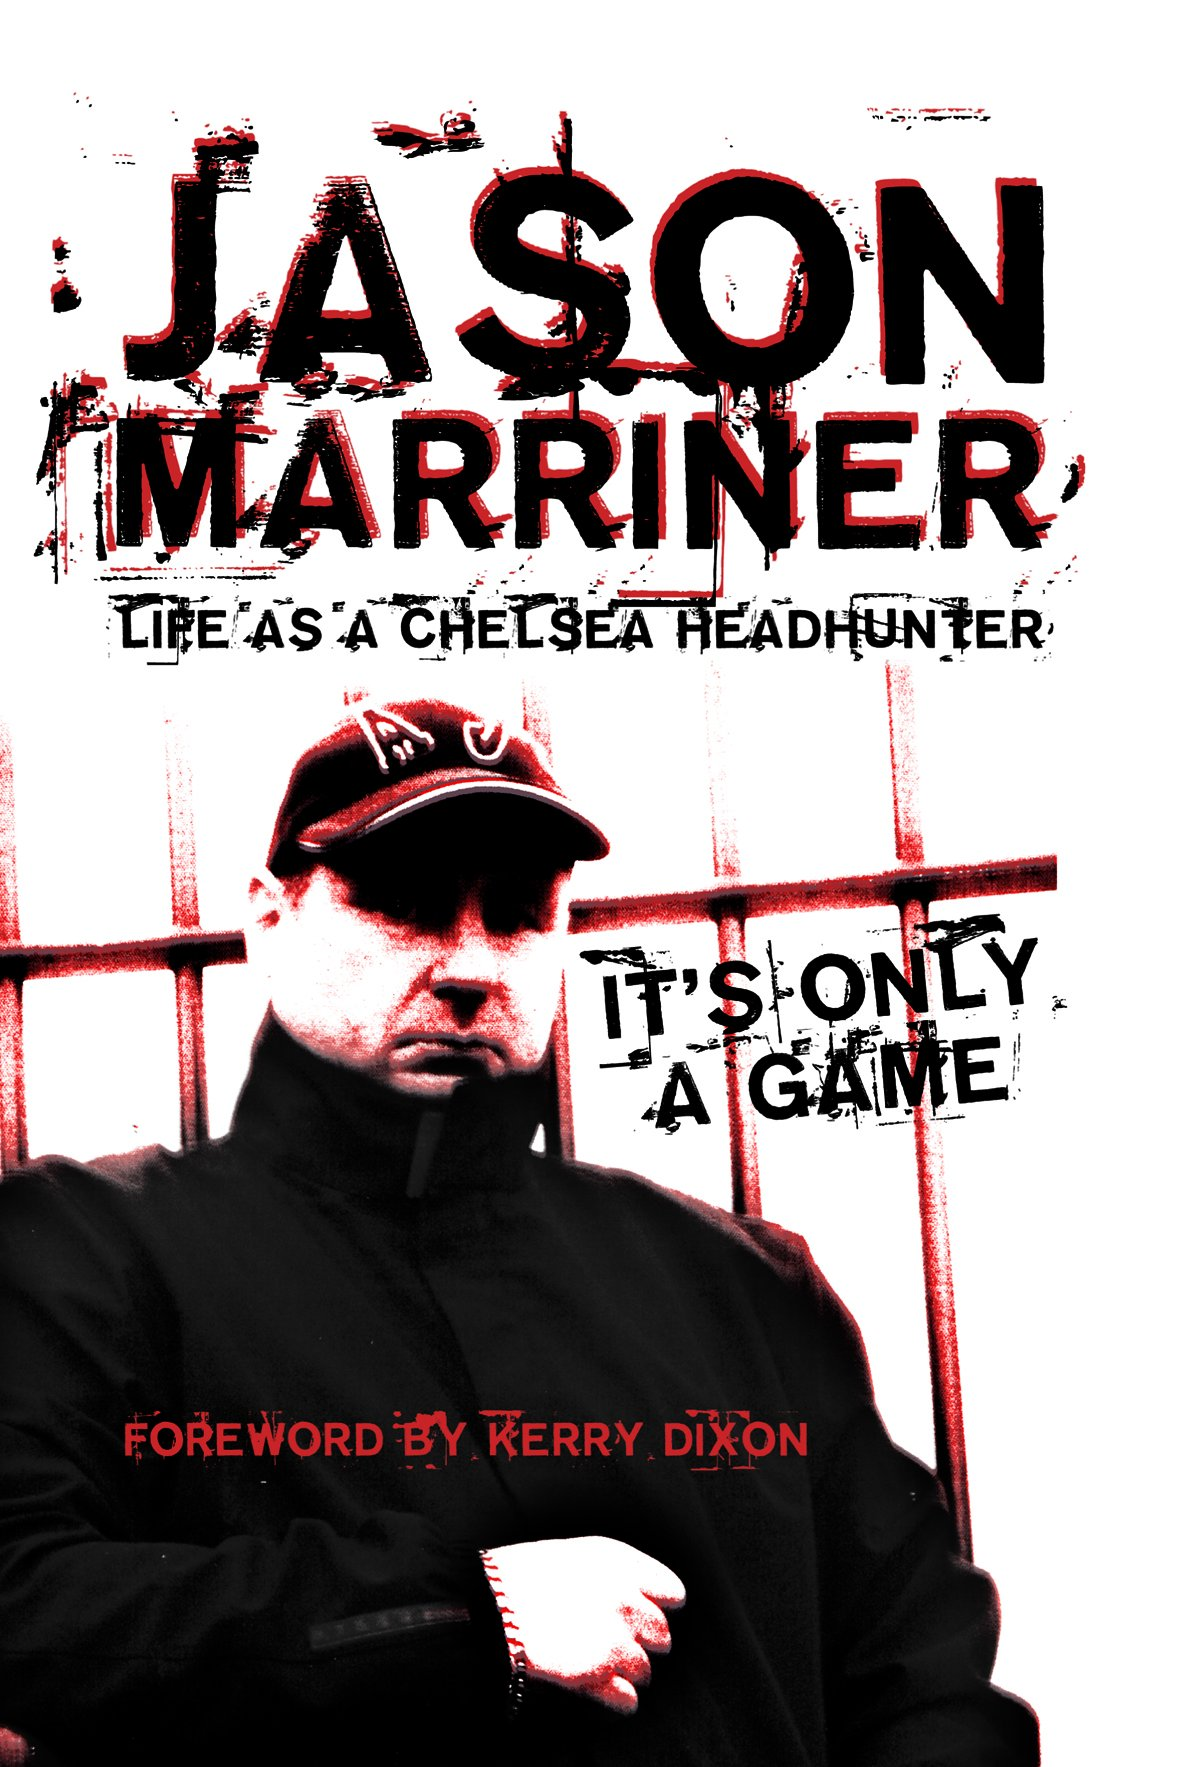 Marriner, J: Life as a Chelsea Headhunter